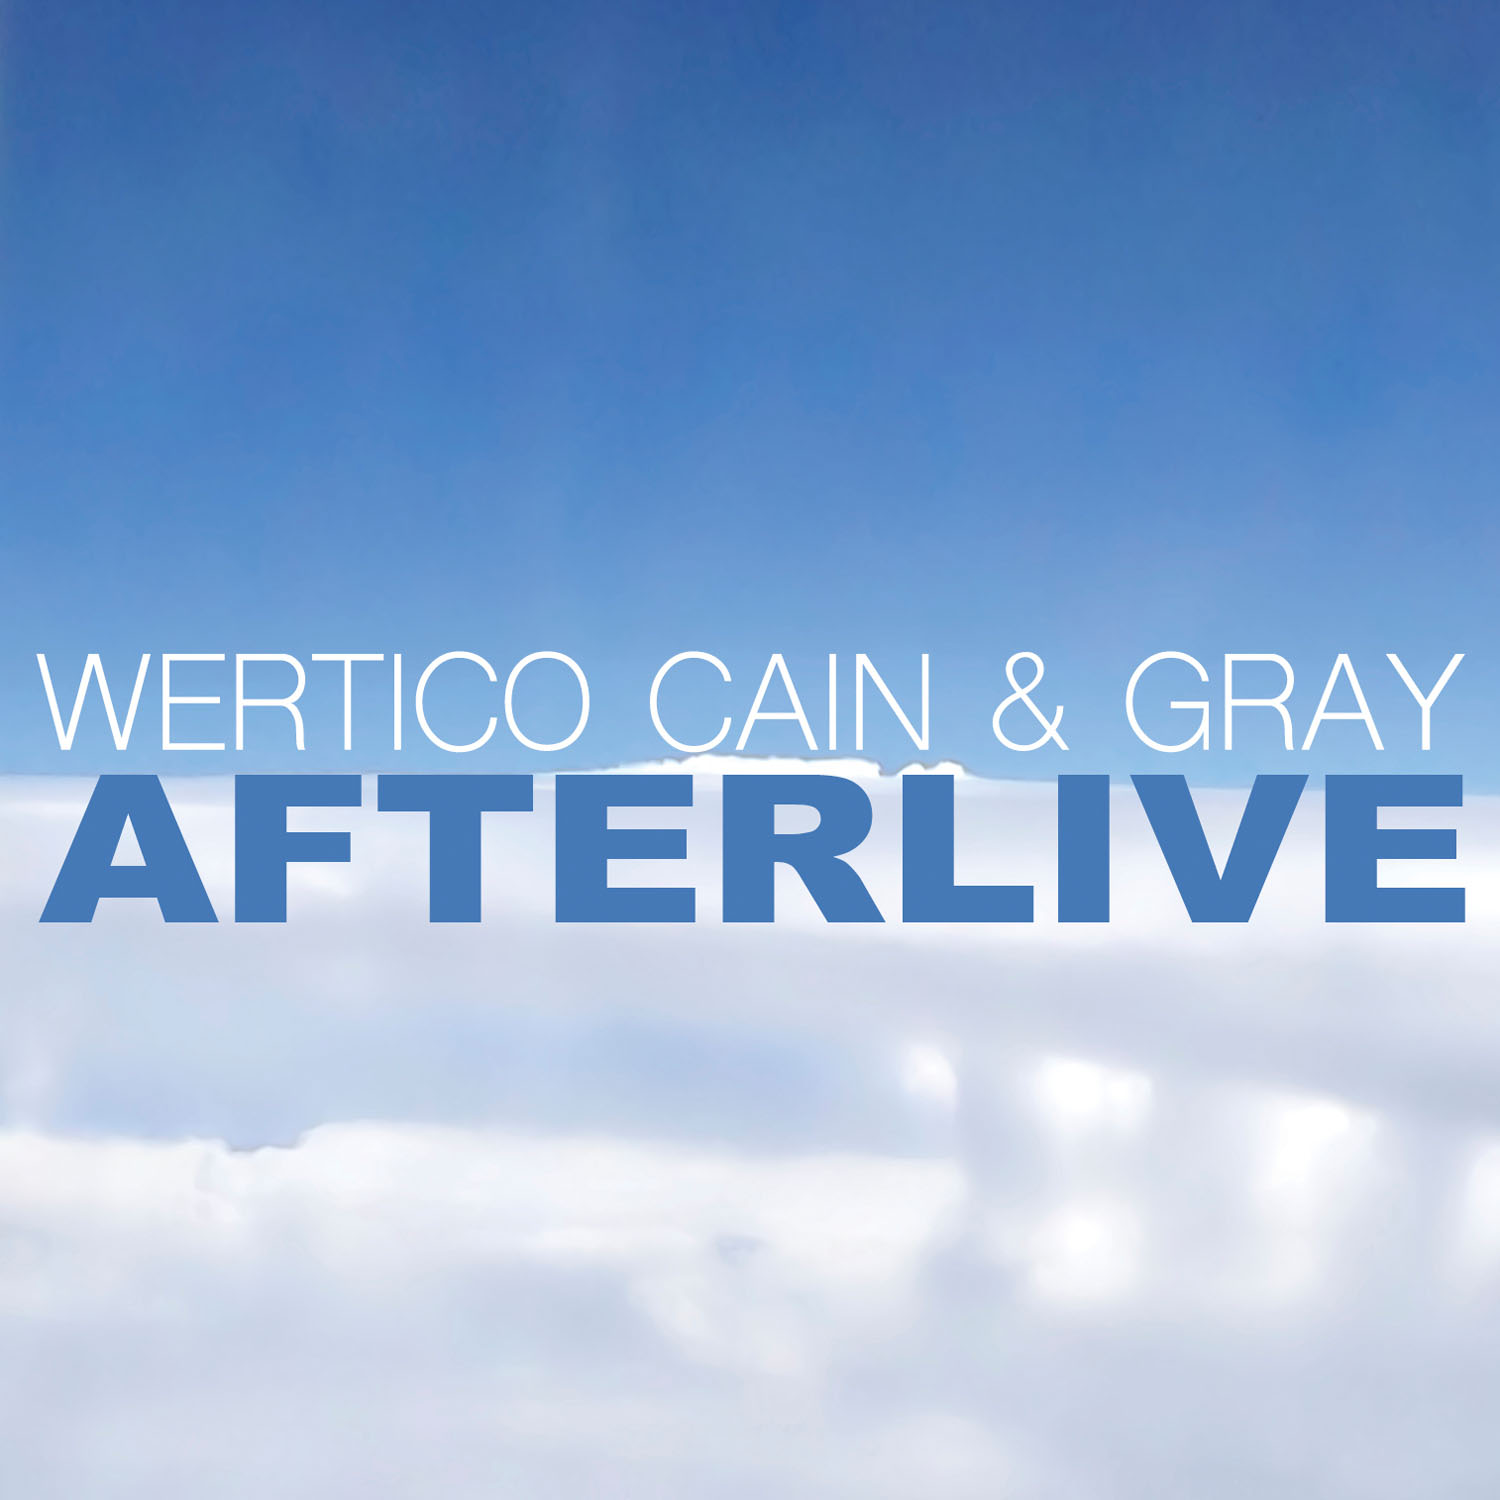 Paul-Wertico-AFTERLIVE.jpg